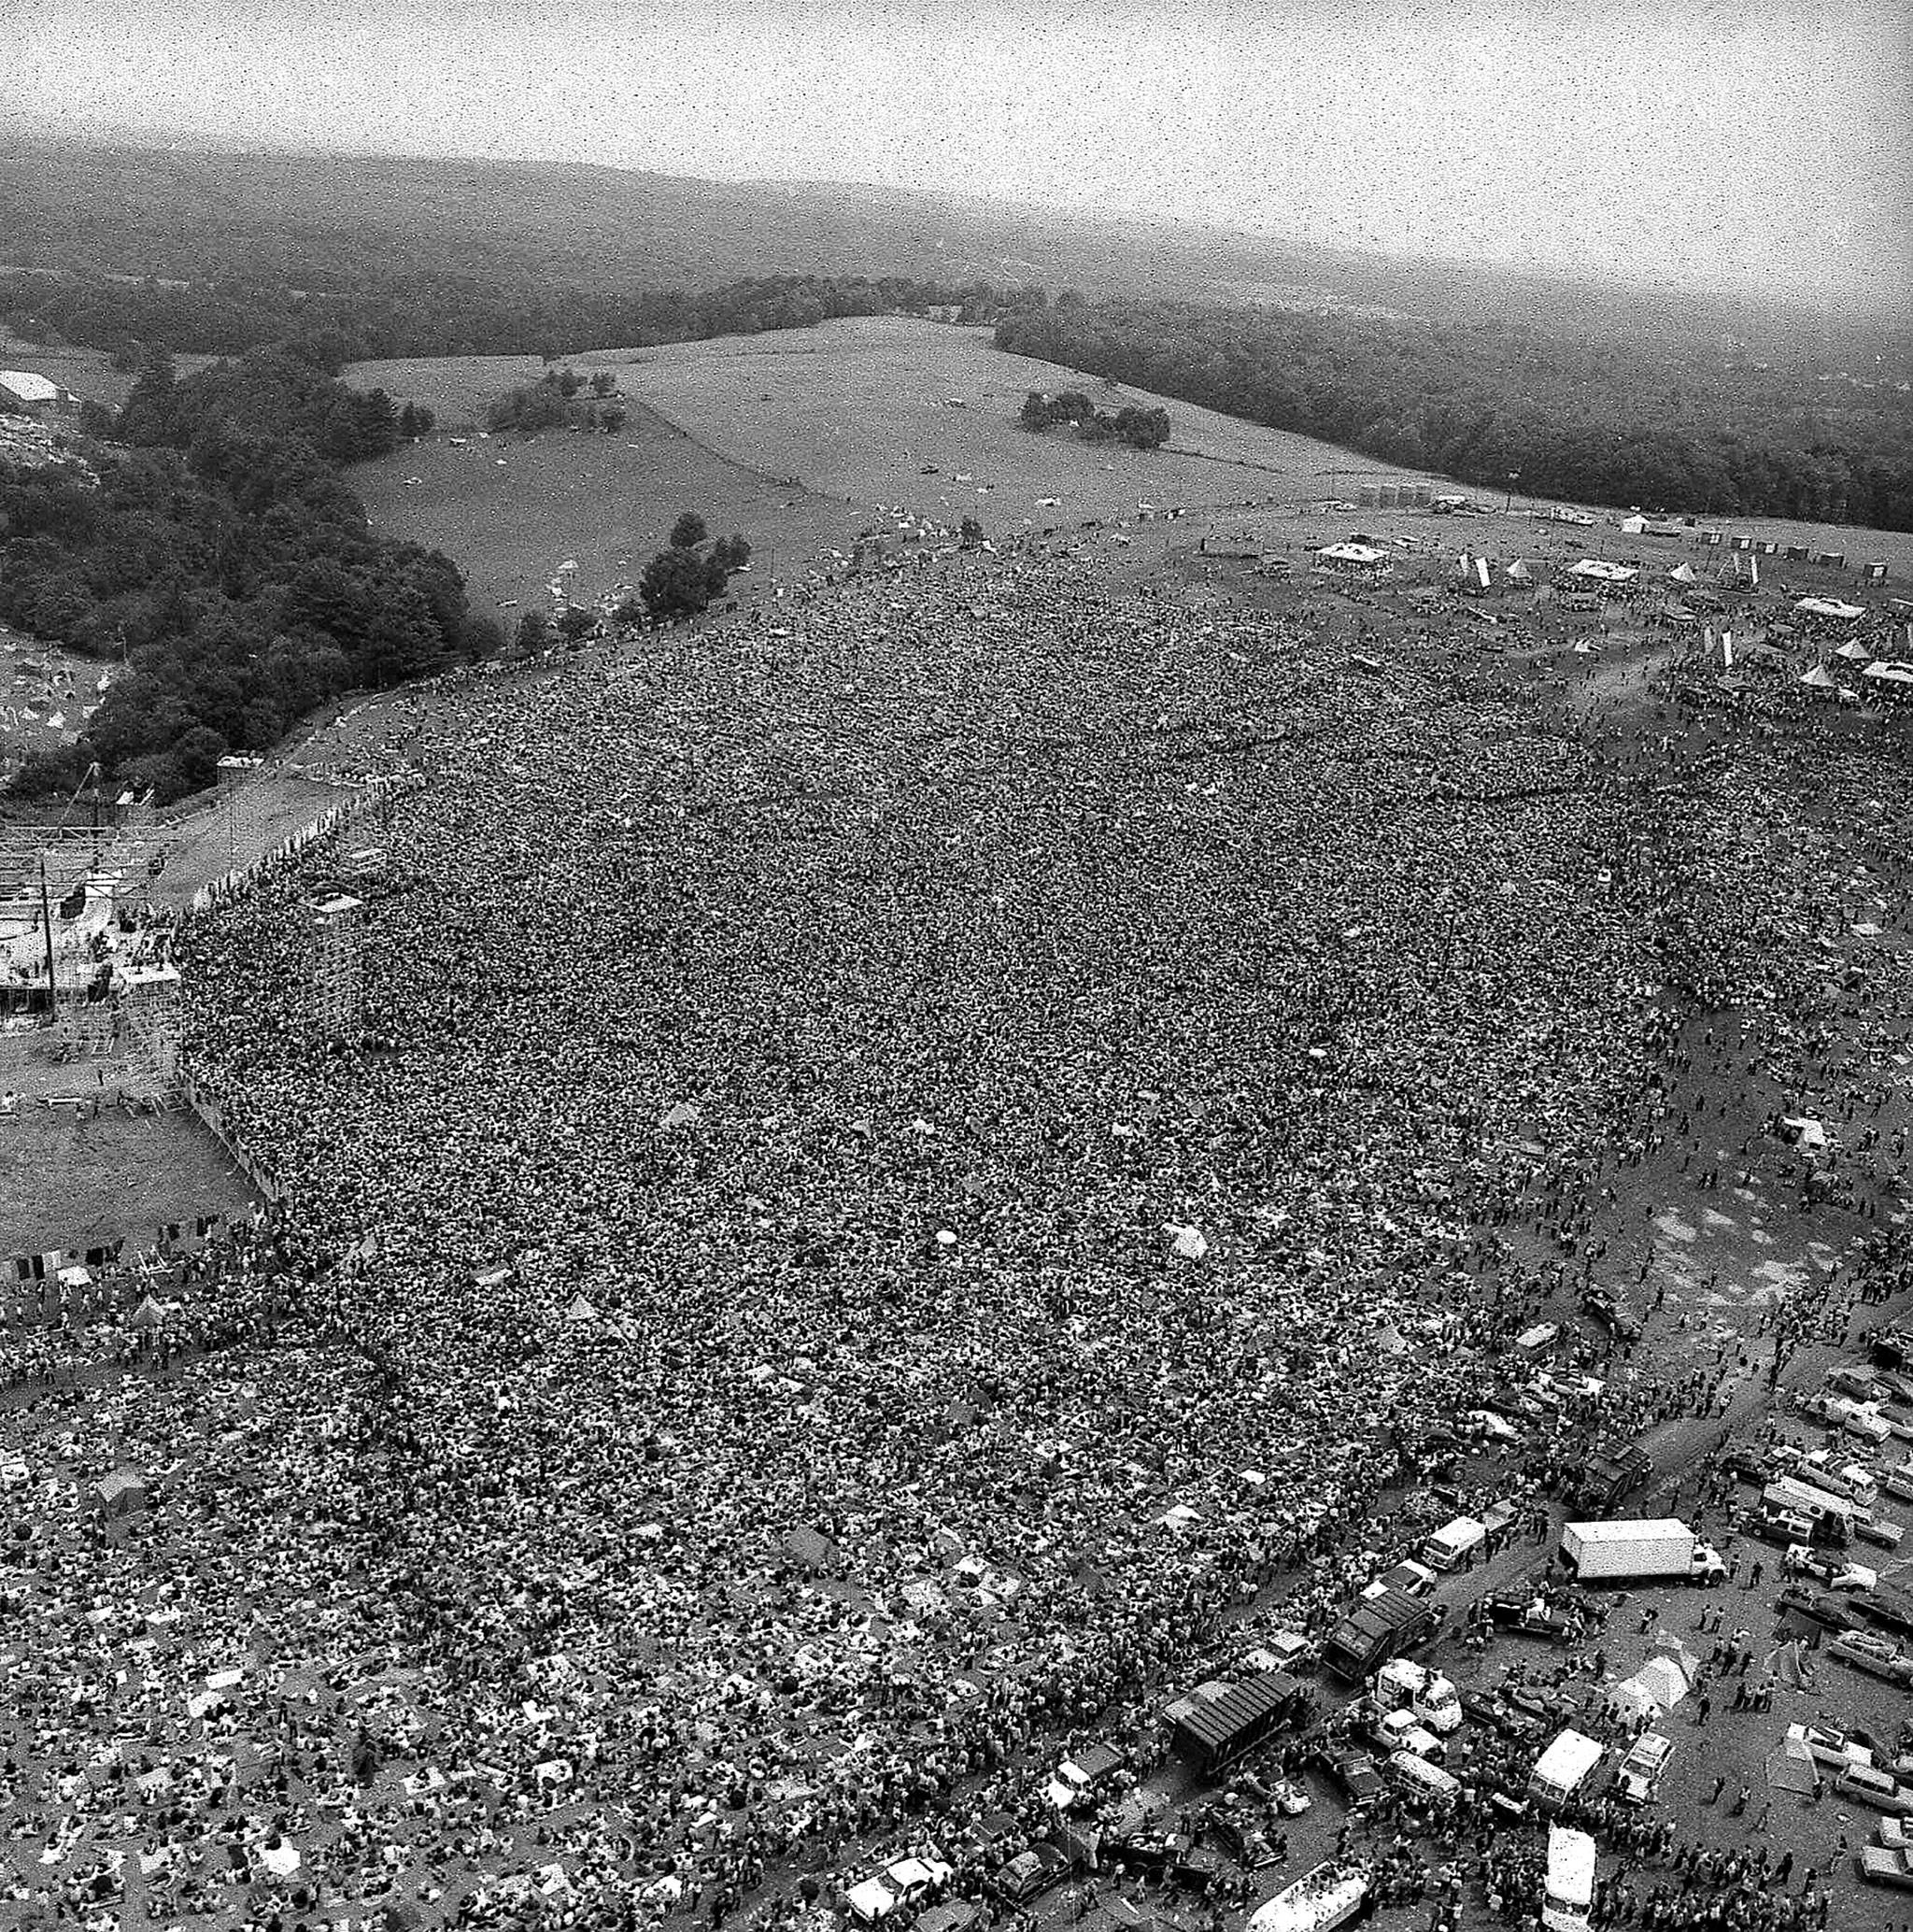 A crowd of about 400,000 at the Woodstock Music and Arts Festival in Bethel, New York, on Aug. 16, 1969. (AP Photo, File)